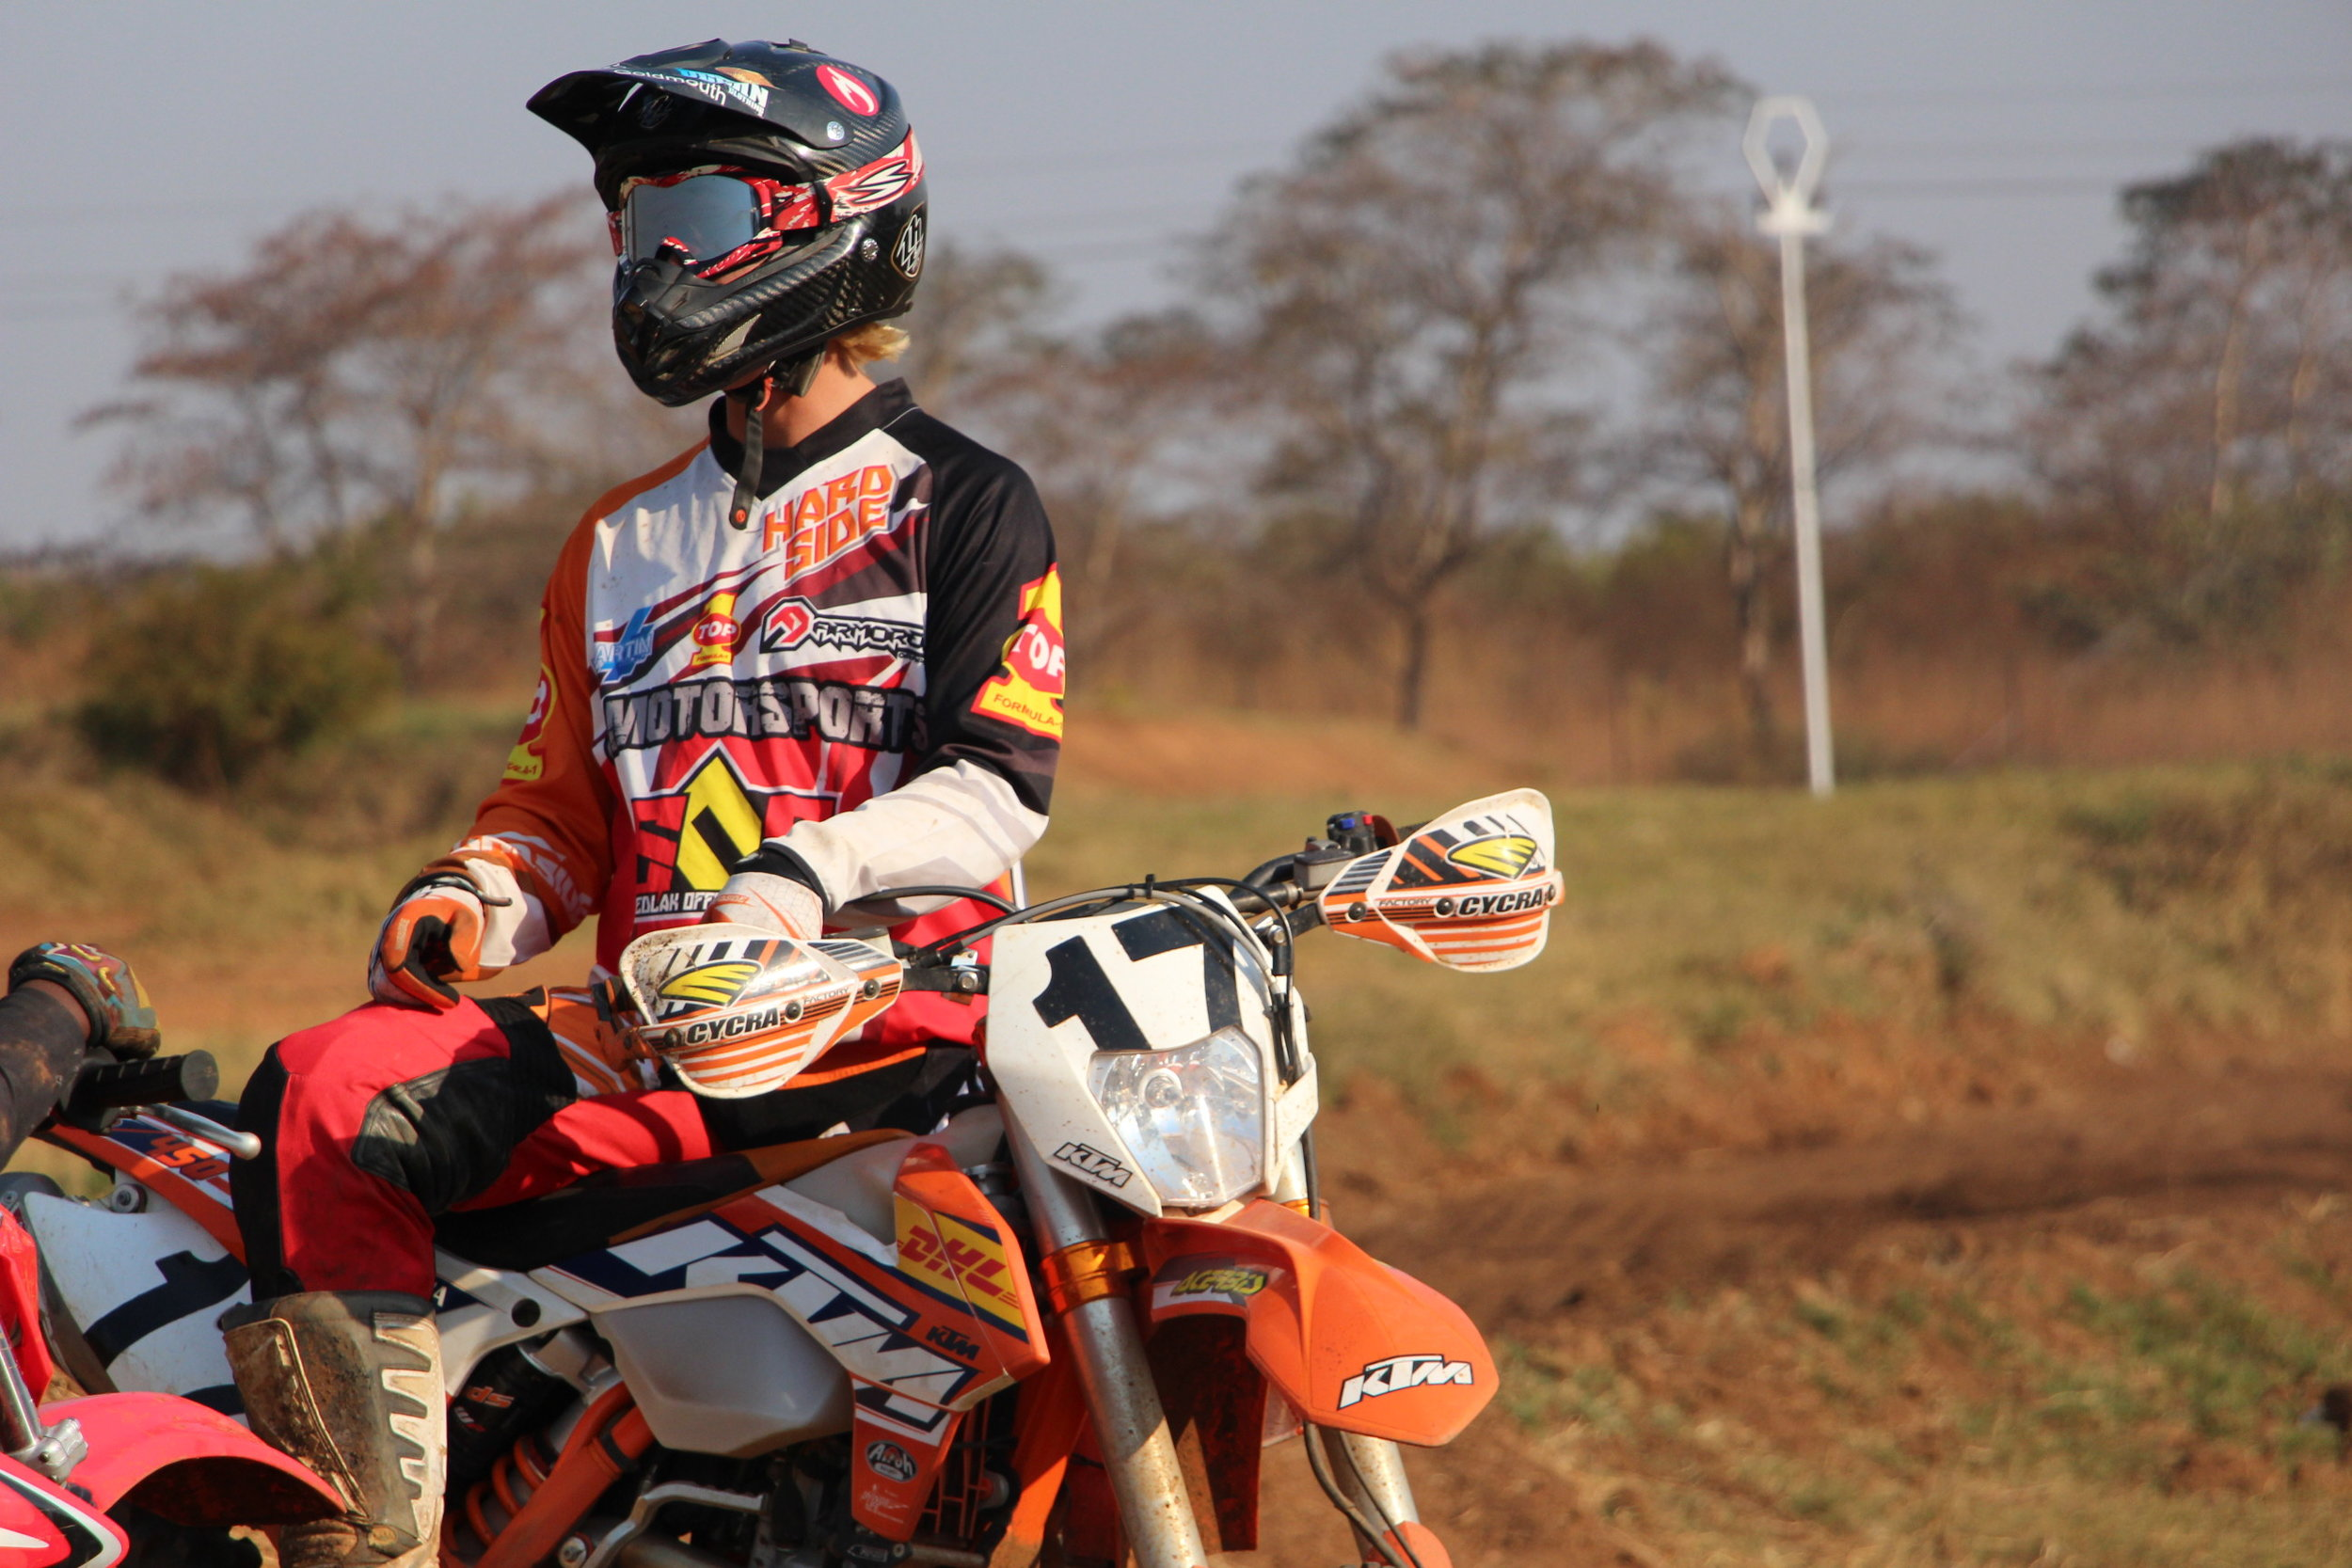 Enduro group trainings on your own track or property